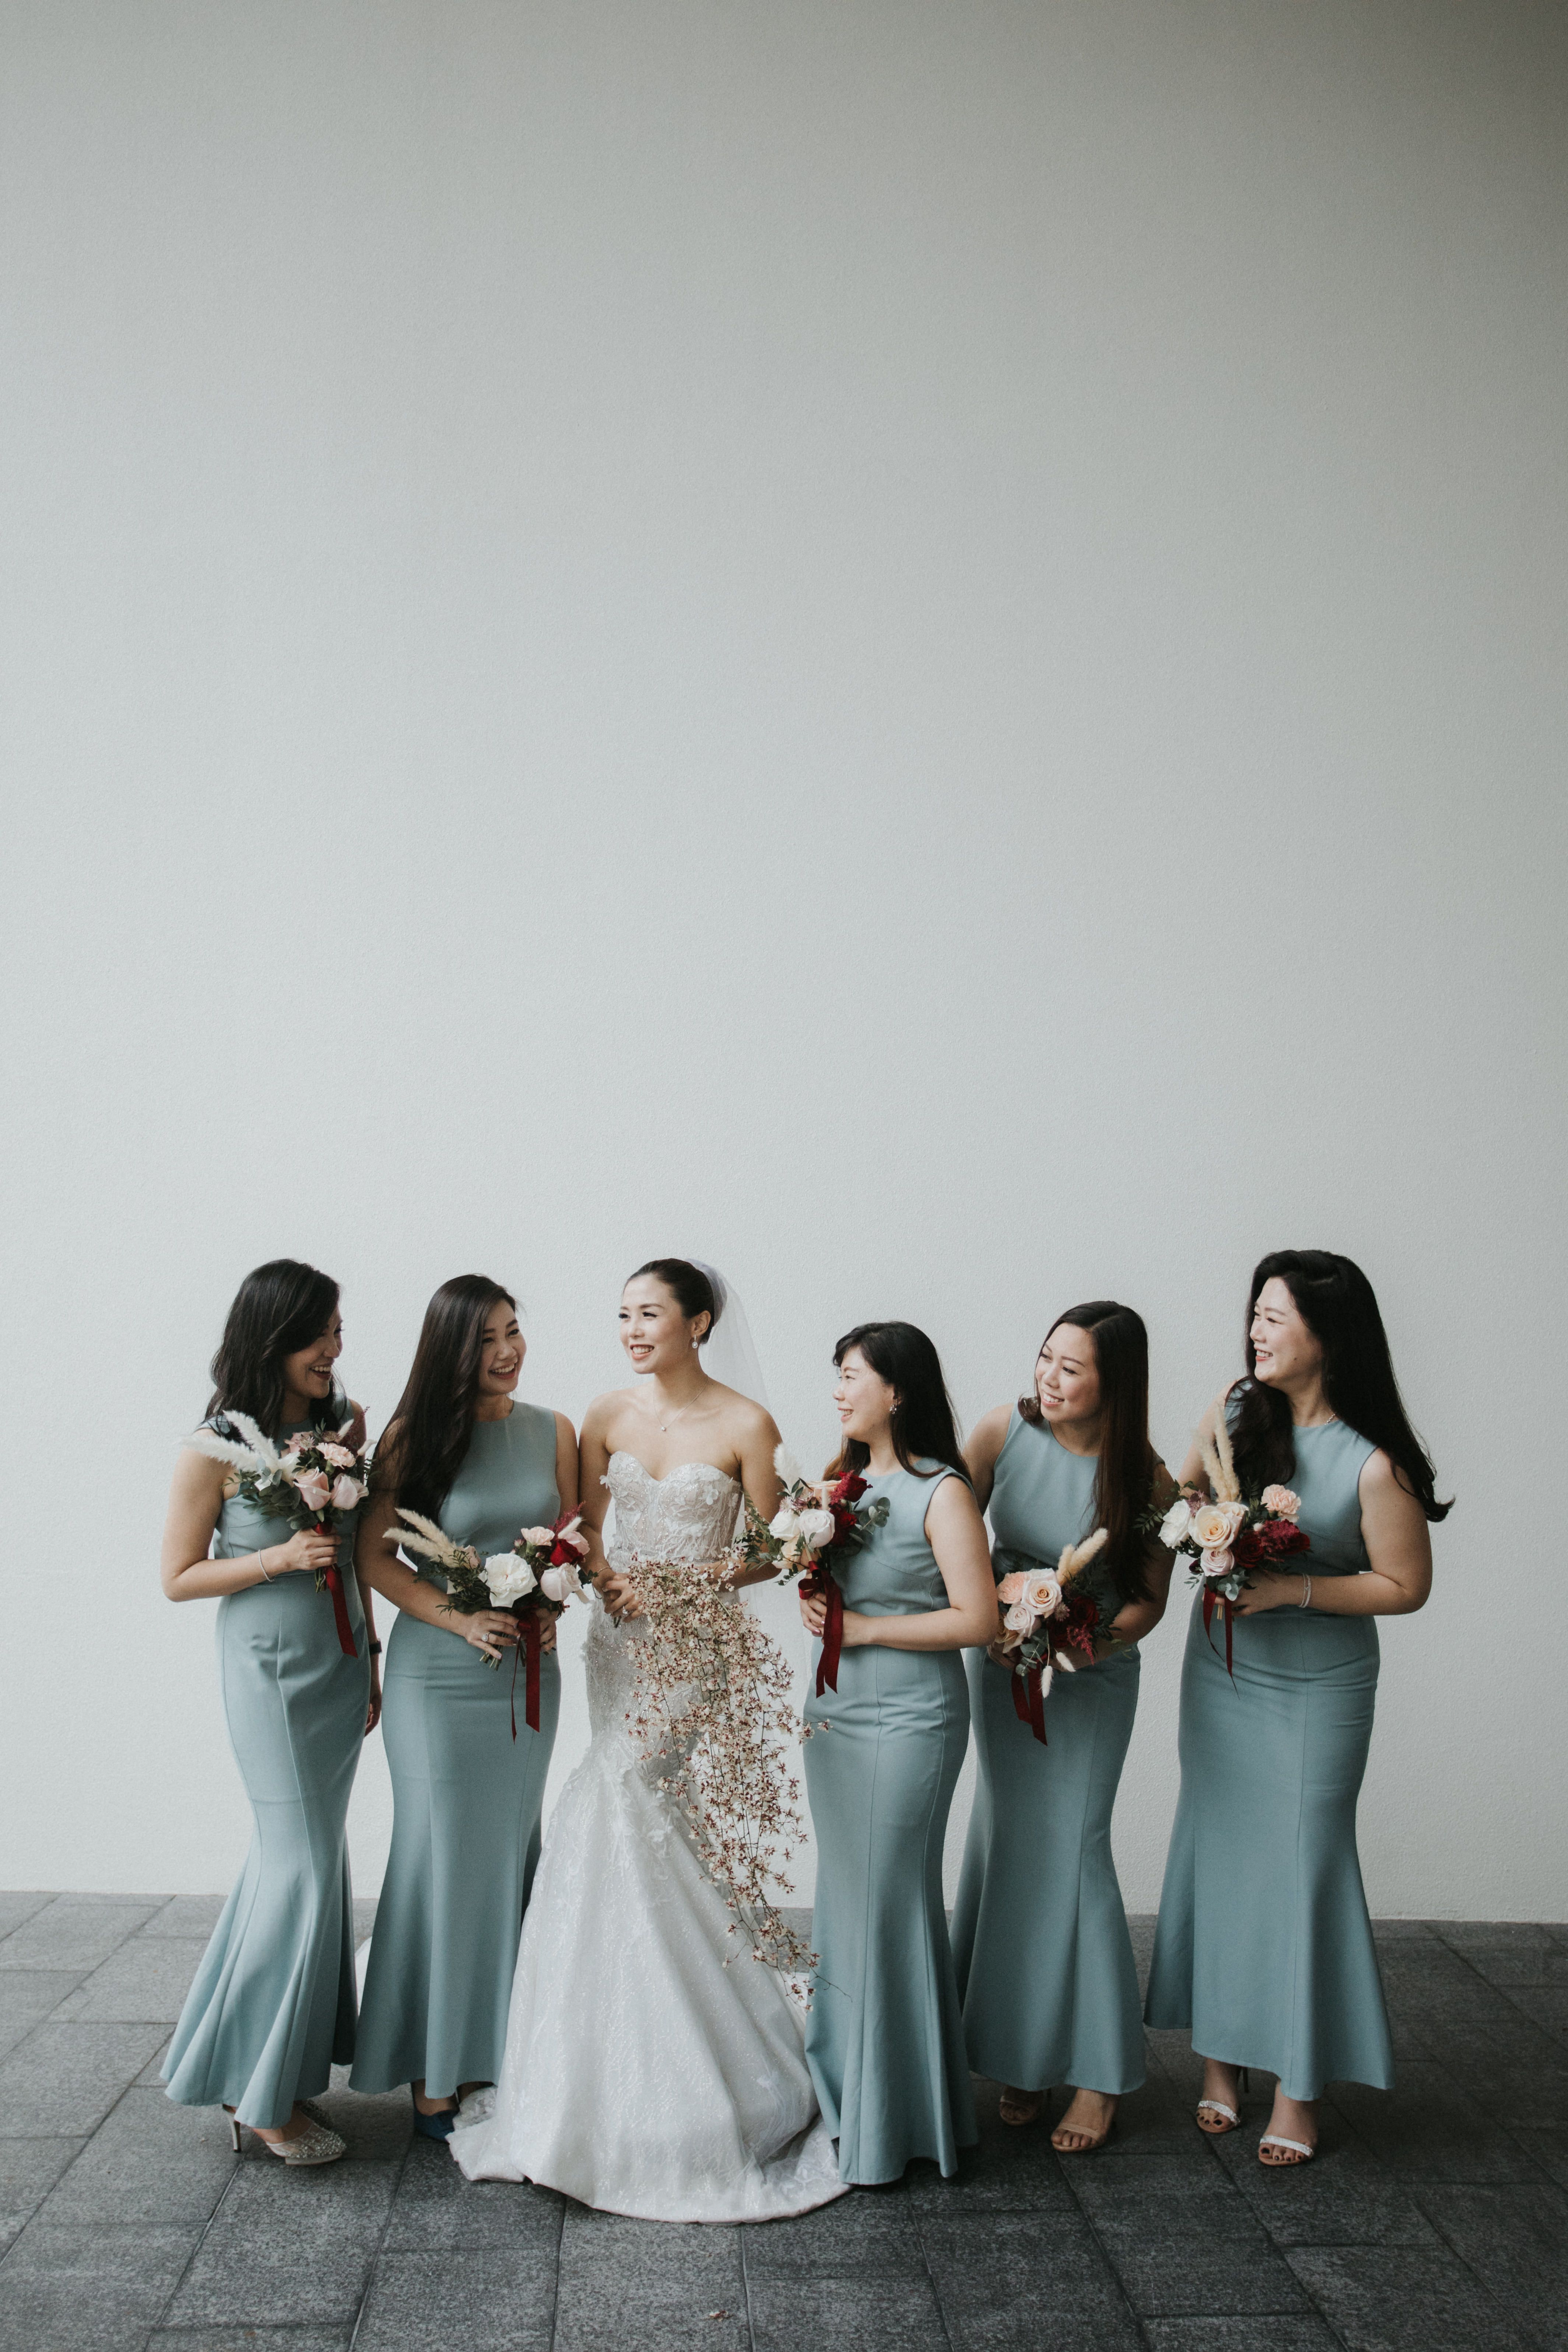 Hints Of Elegance And Romantic Details Make This Wedding An Extra Inspiring Scene Wedding Entourage Gowns Wedding Entourage Wedding Modern